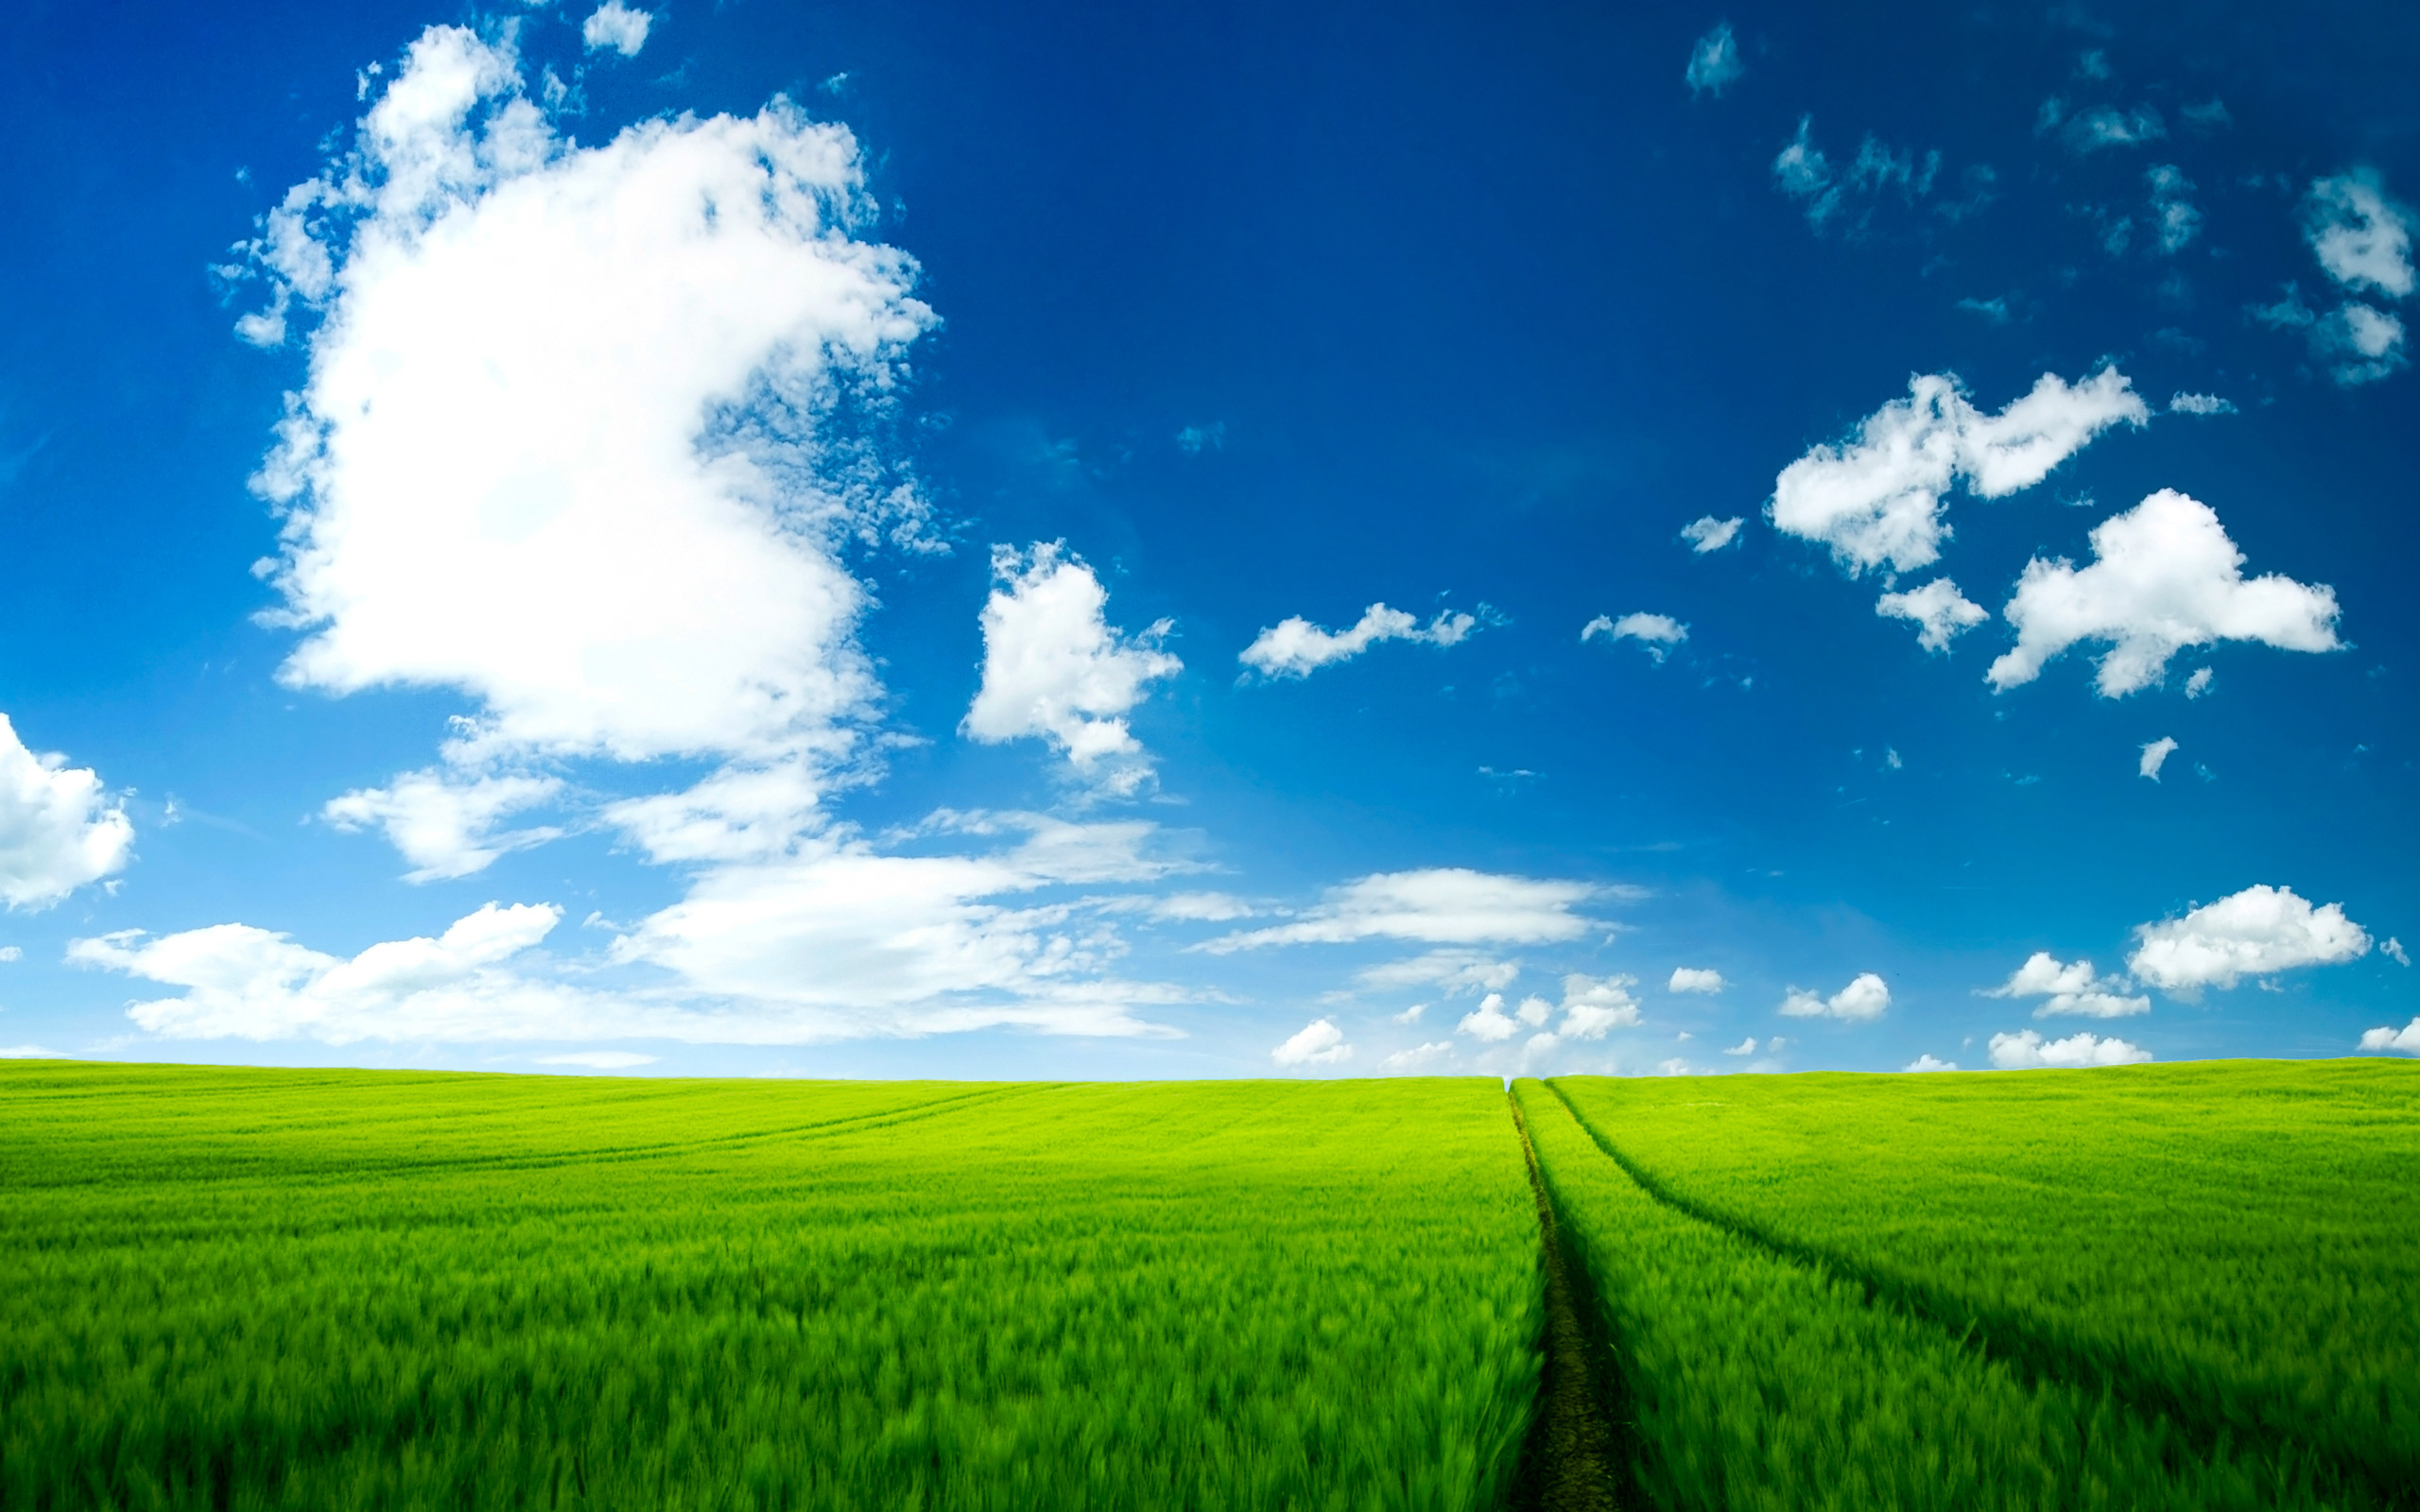 Summer Scenery Wallpapers | HD Wallpapers